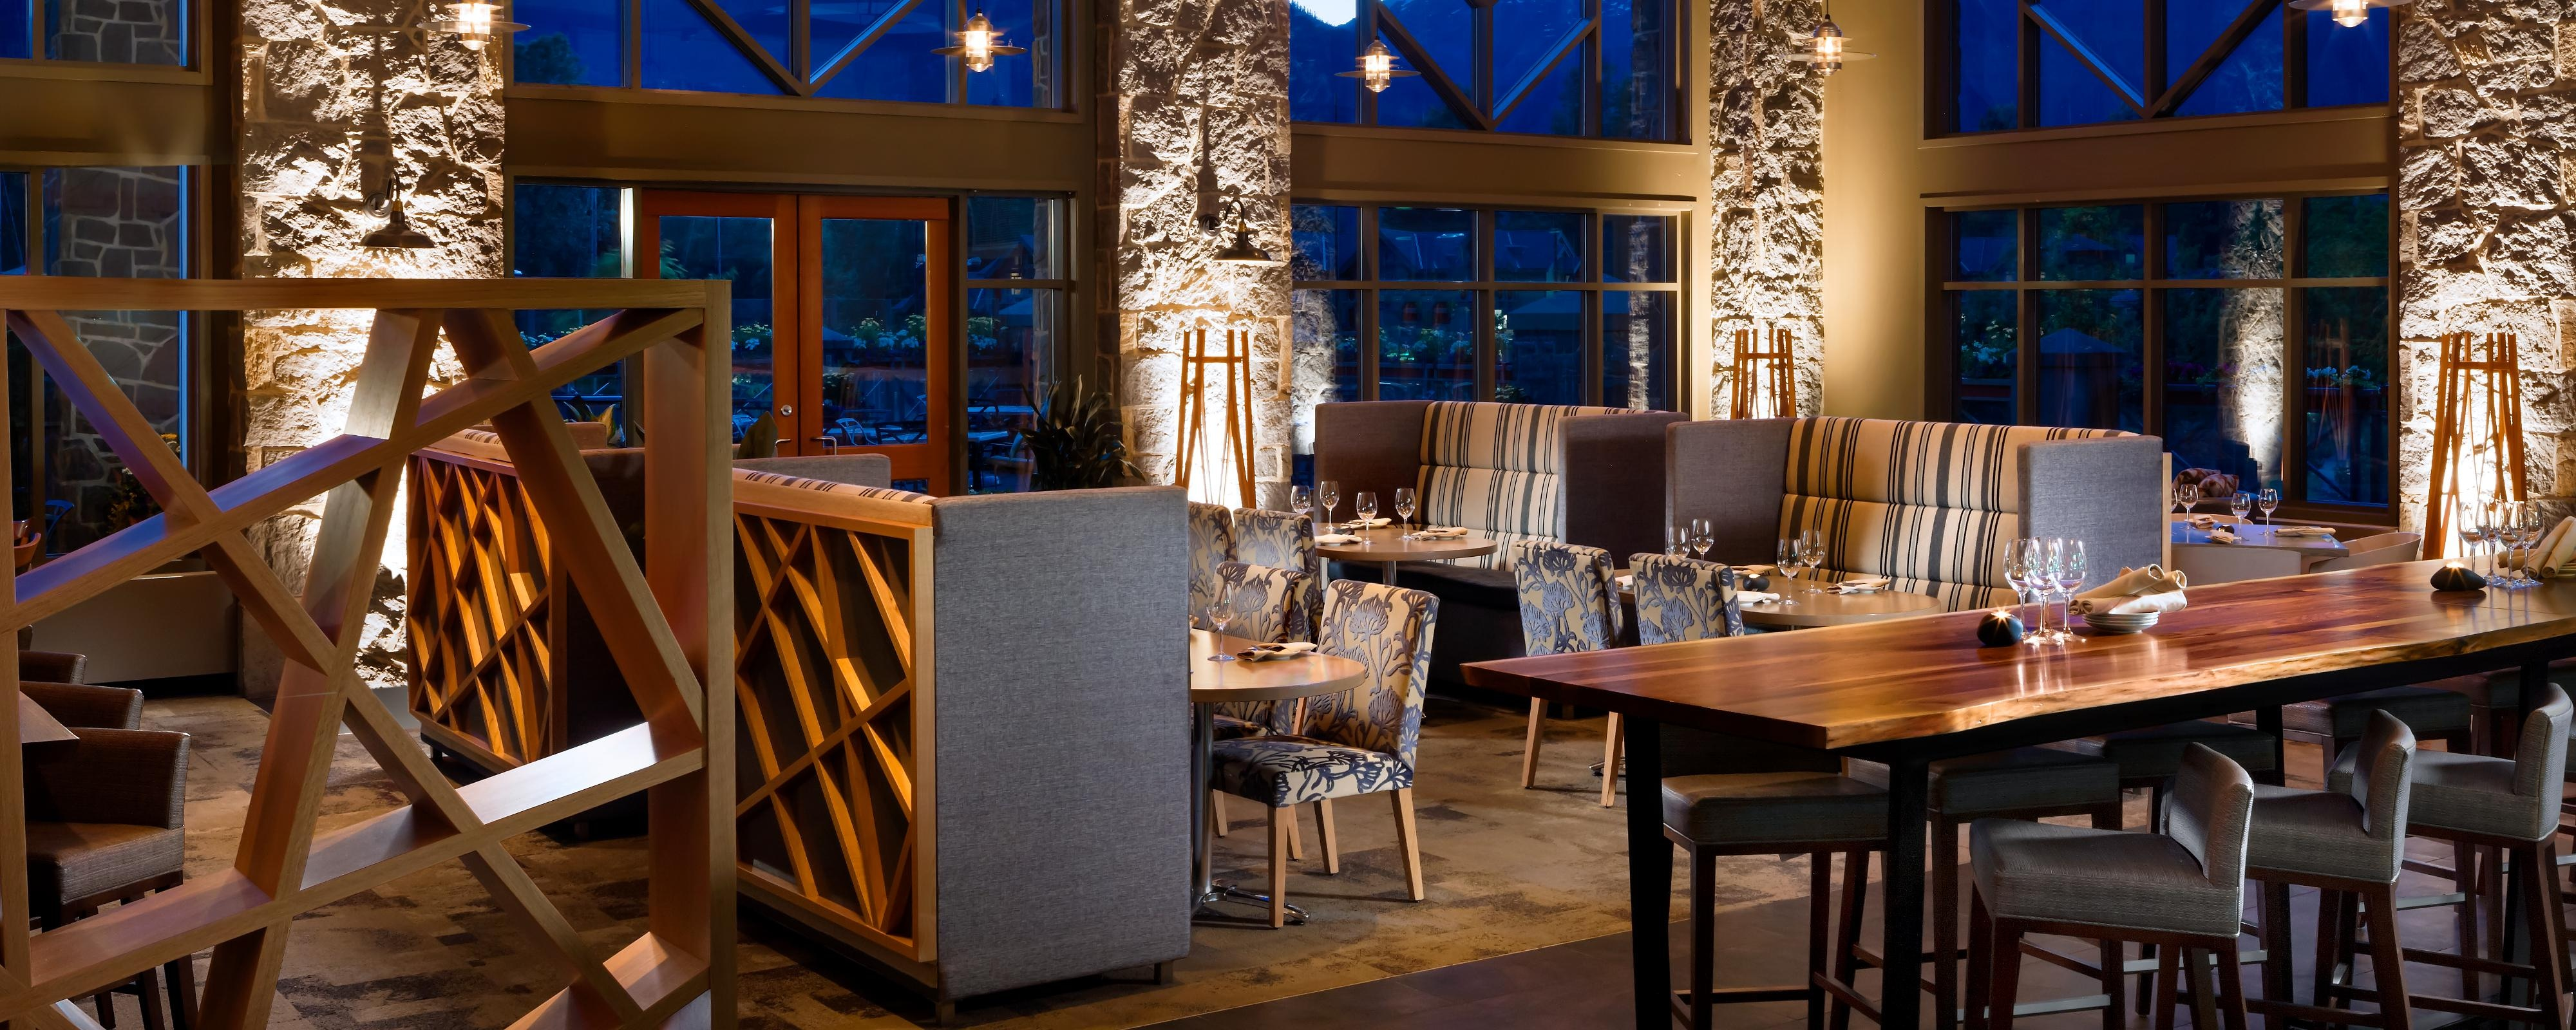 Whistler Village Restaurants And Dining The Westin Resort